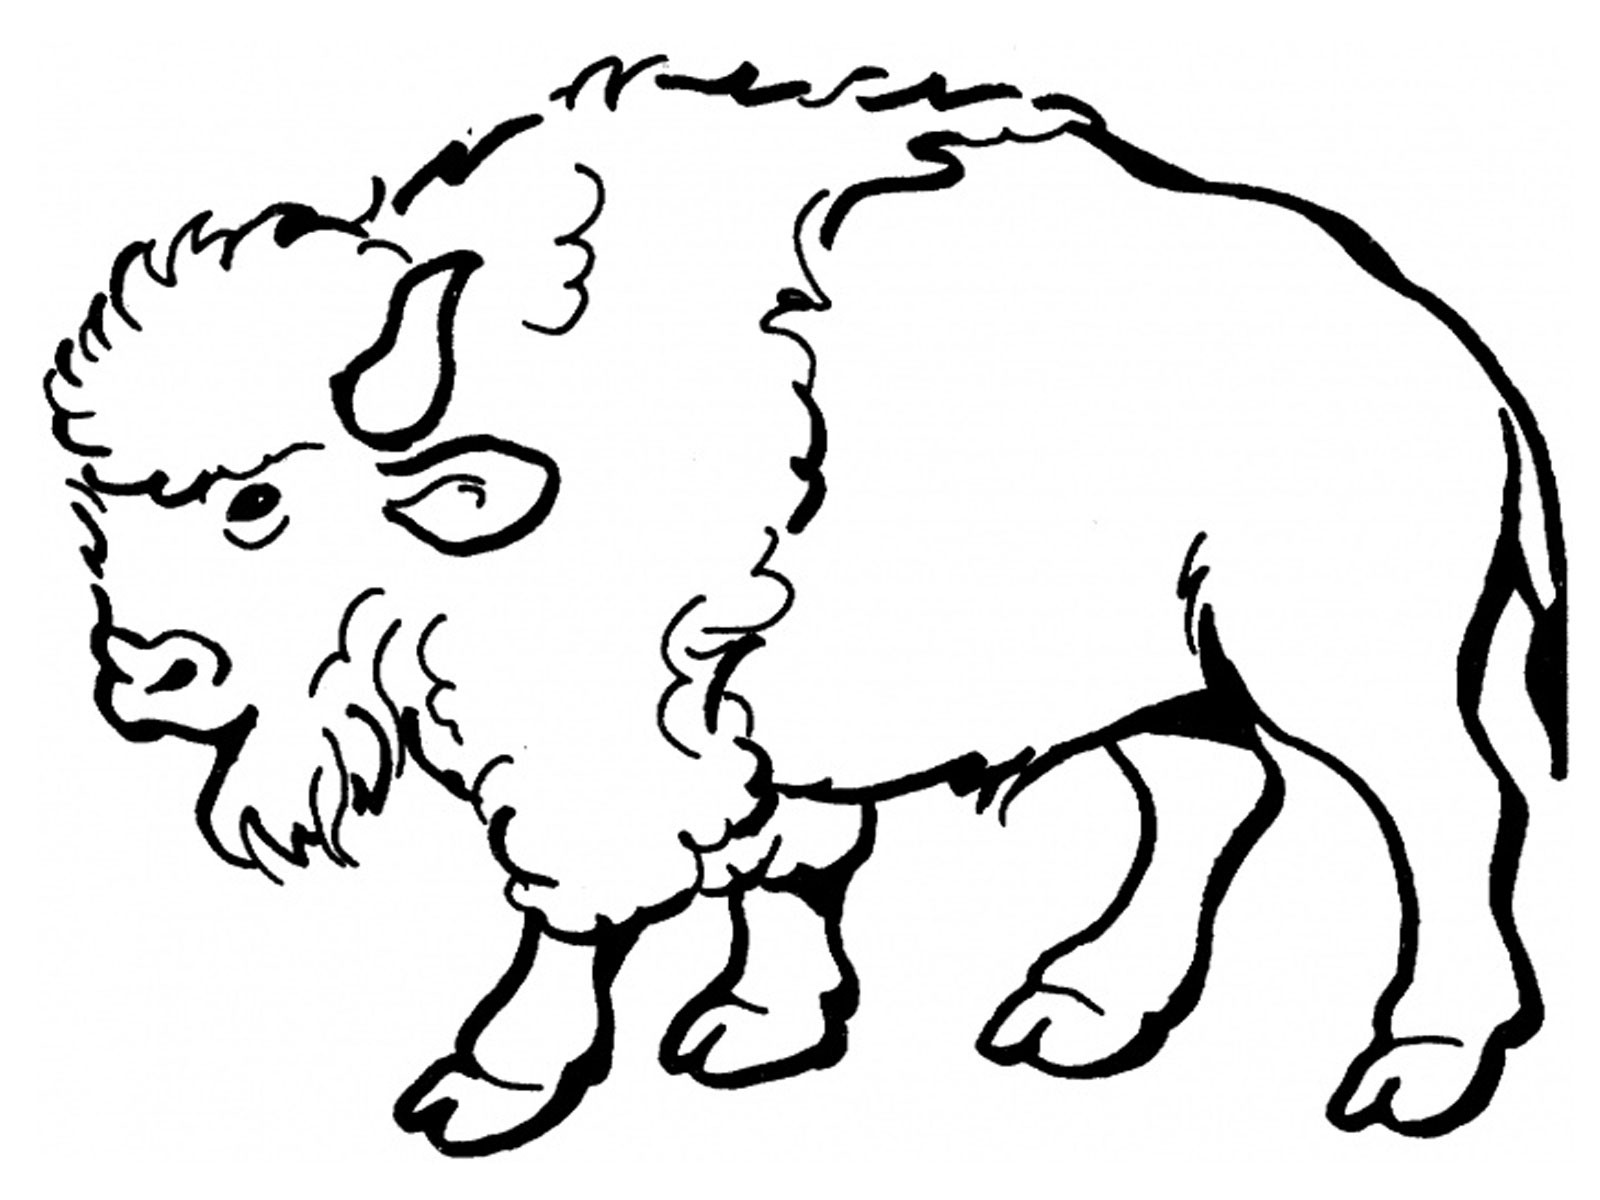 free animal coloring pages kids - free printable bison coloring pages for kids